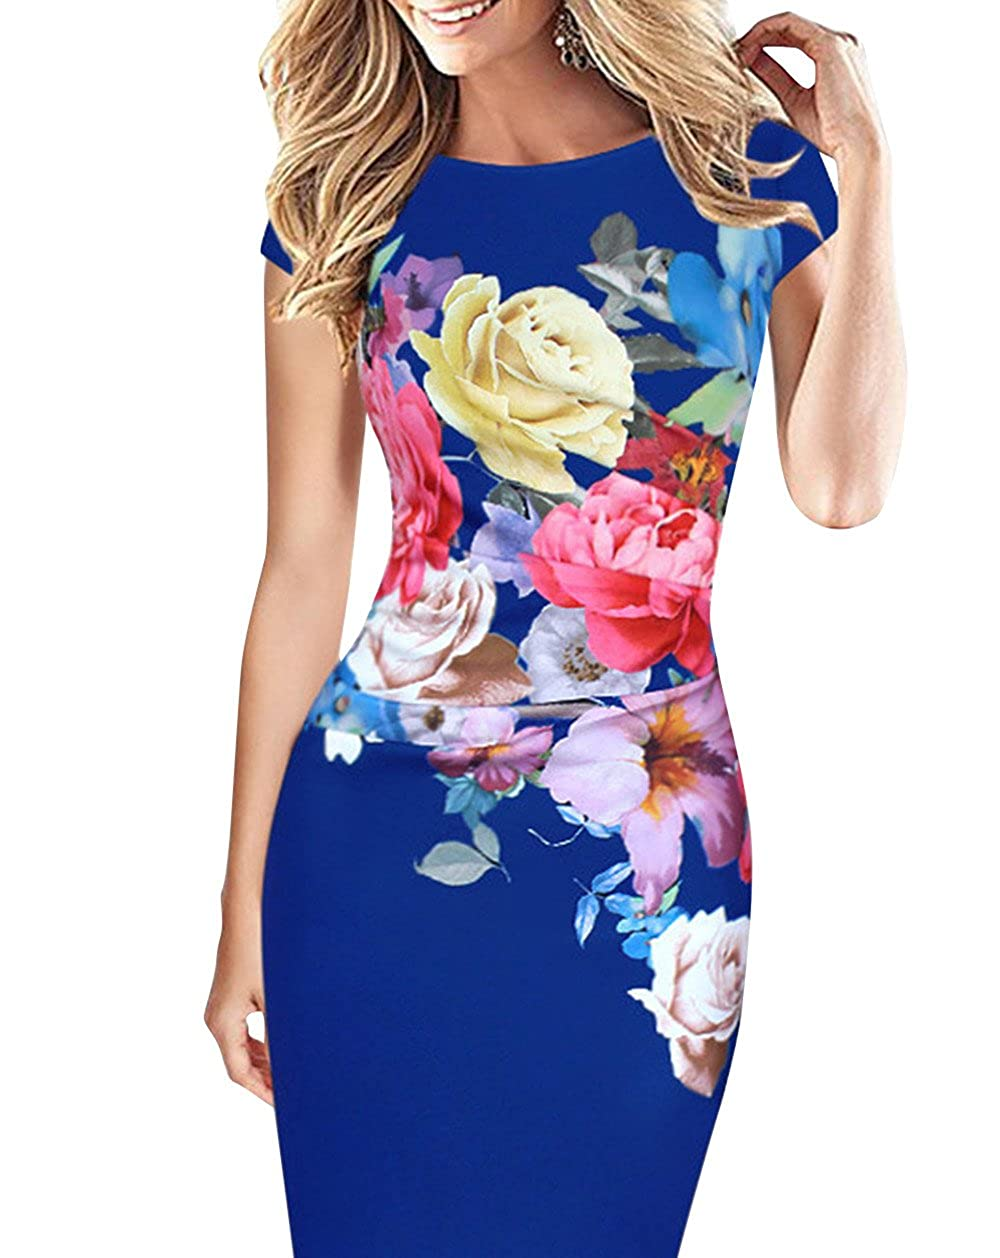 6120741c6bf Features: Cap Sleeve, Knee Length, Body con, Elegant Floral Sheath Pencil  Dress. Perfect for Work Wear, Formal Events, Wedding Guest Wear and ...